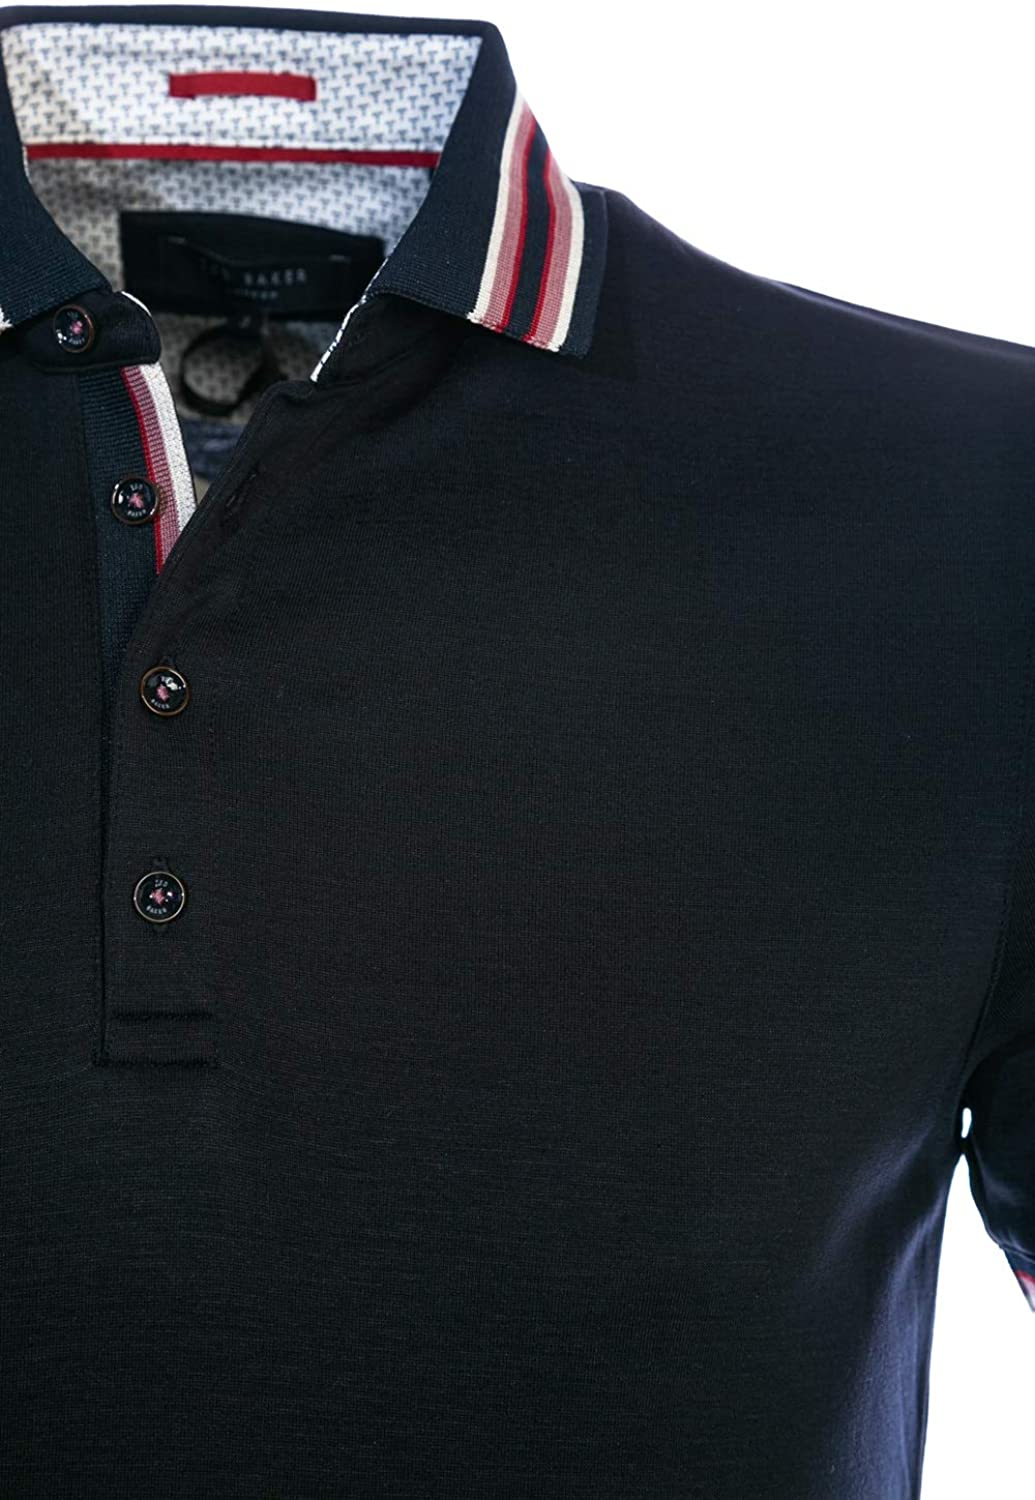 Ted Baker Teacups SS Polo Shirt with Striped Collar Navy Navy Blue